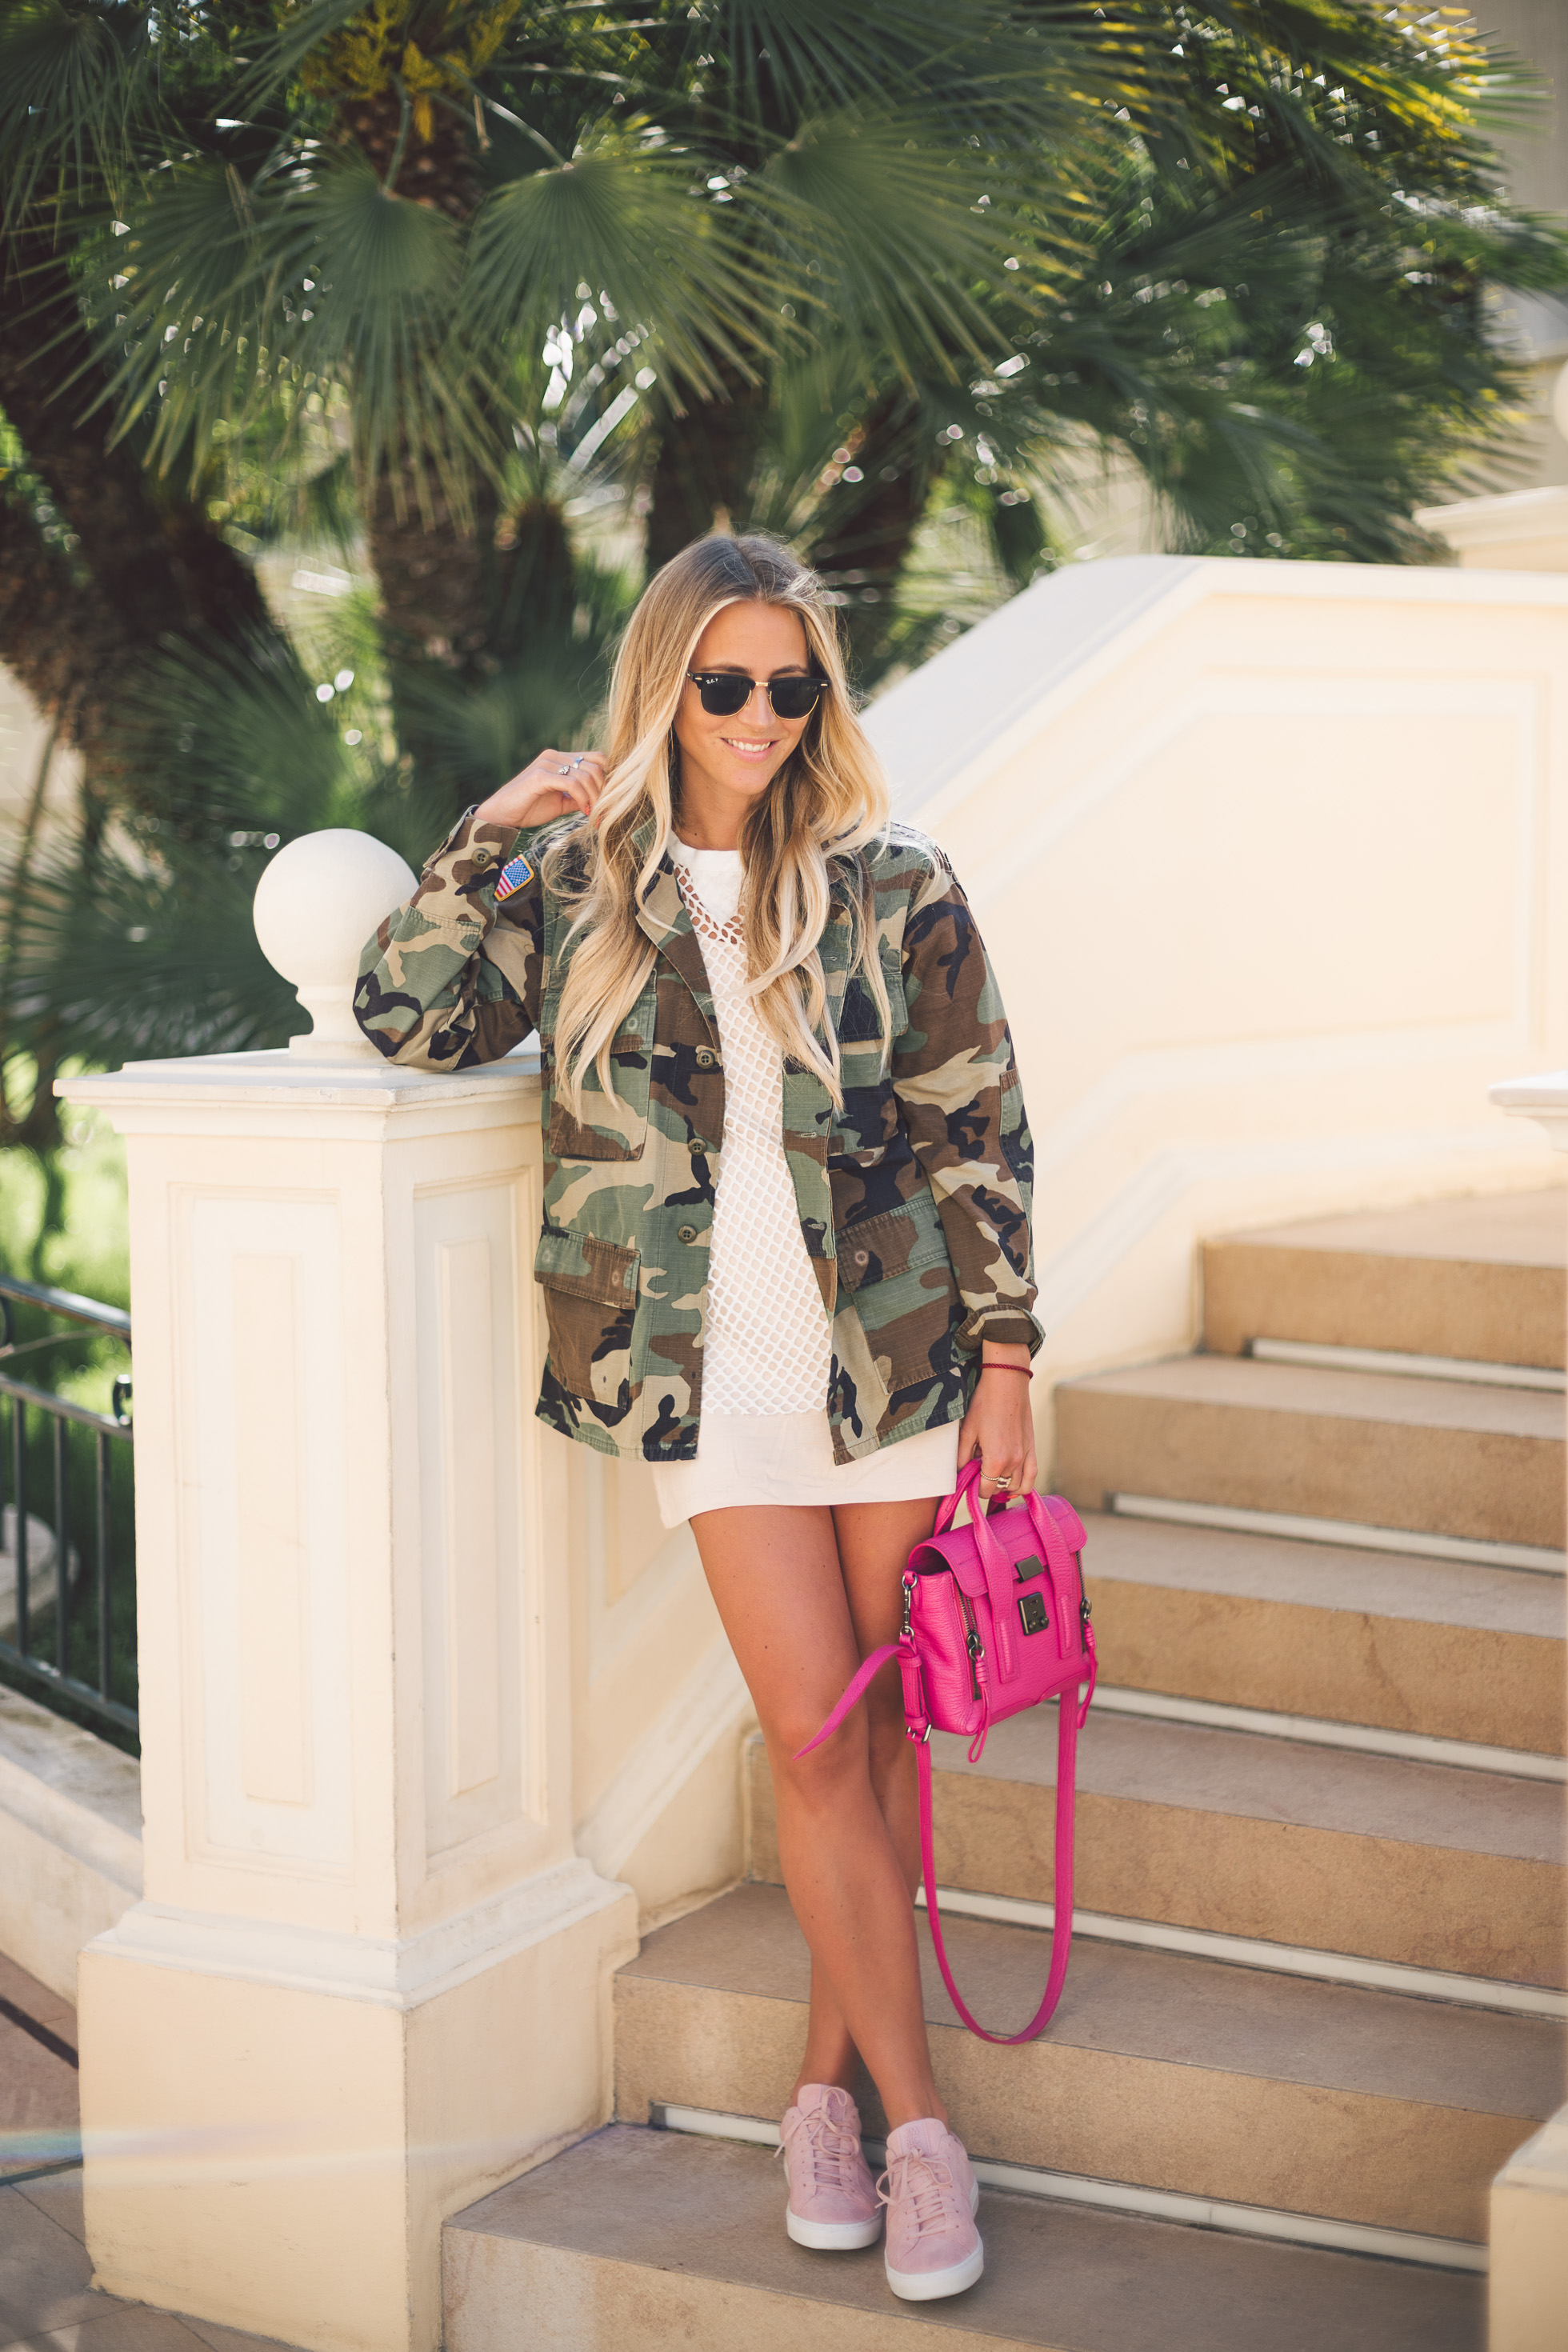 For a classic and timeless style, try wearing an army style camo jacket over a mini dress or a simple top. Janni Deler shows us how it is possible to bring a feminine twist to the look by choosing a hot pink bag and matching sneakers! Jacket: JN Llovet, Dress: Choies, Bag: Phillip Lim, Shoes: Jim Rickey.